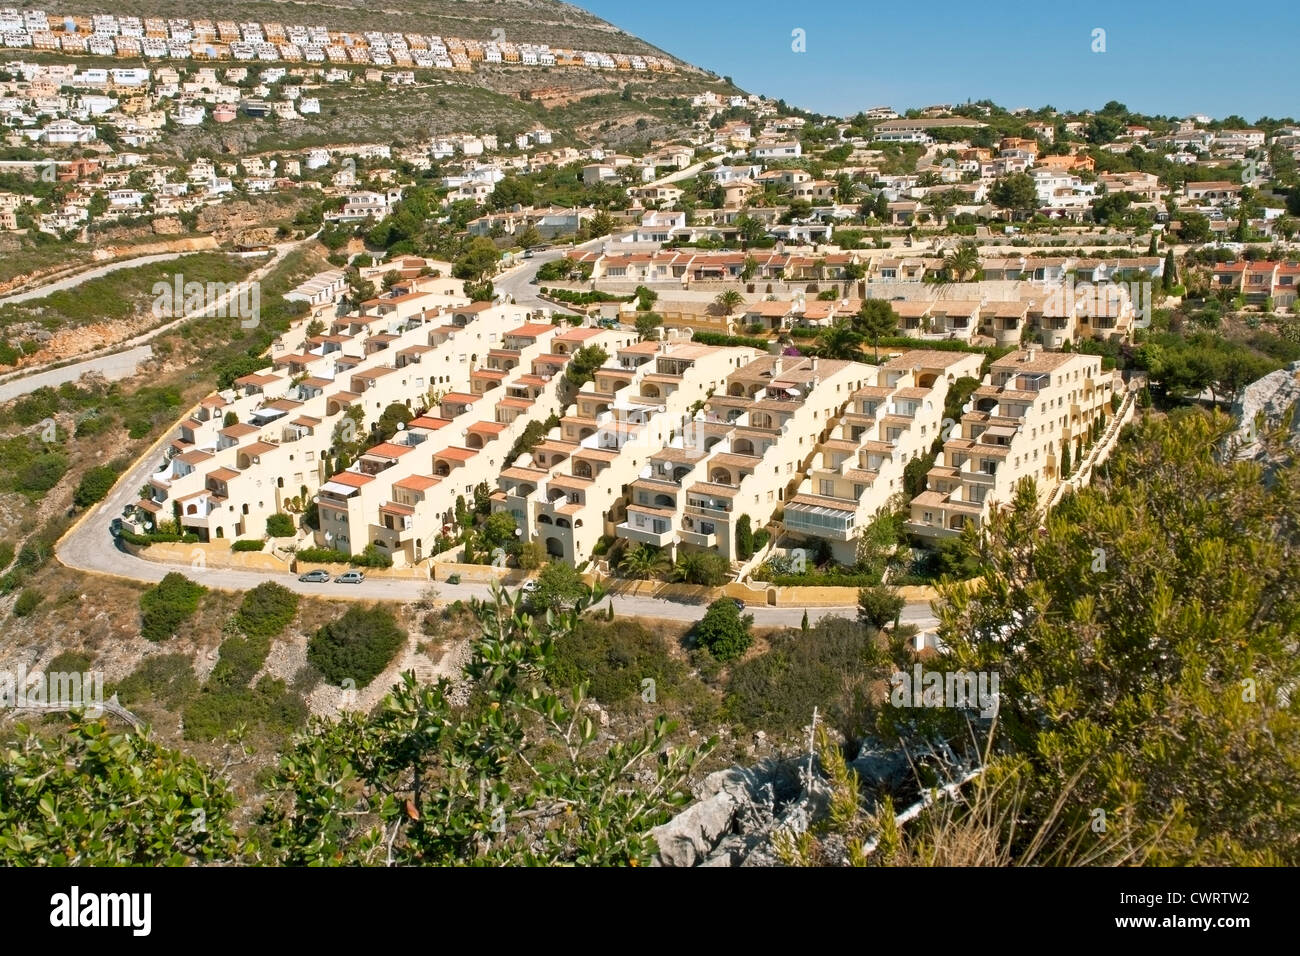 Apartments in the Pueblo de Luz area of the urbanisation (urbanizacion) Cumbre del Sol. Benitachell. Costa Blanca - Stock Image